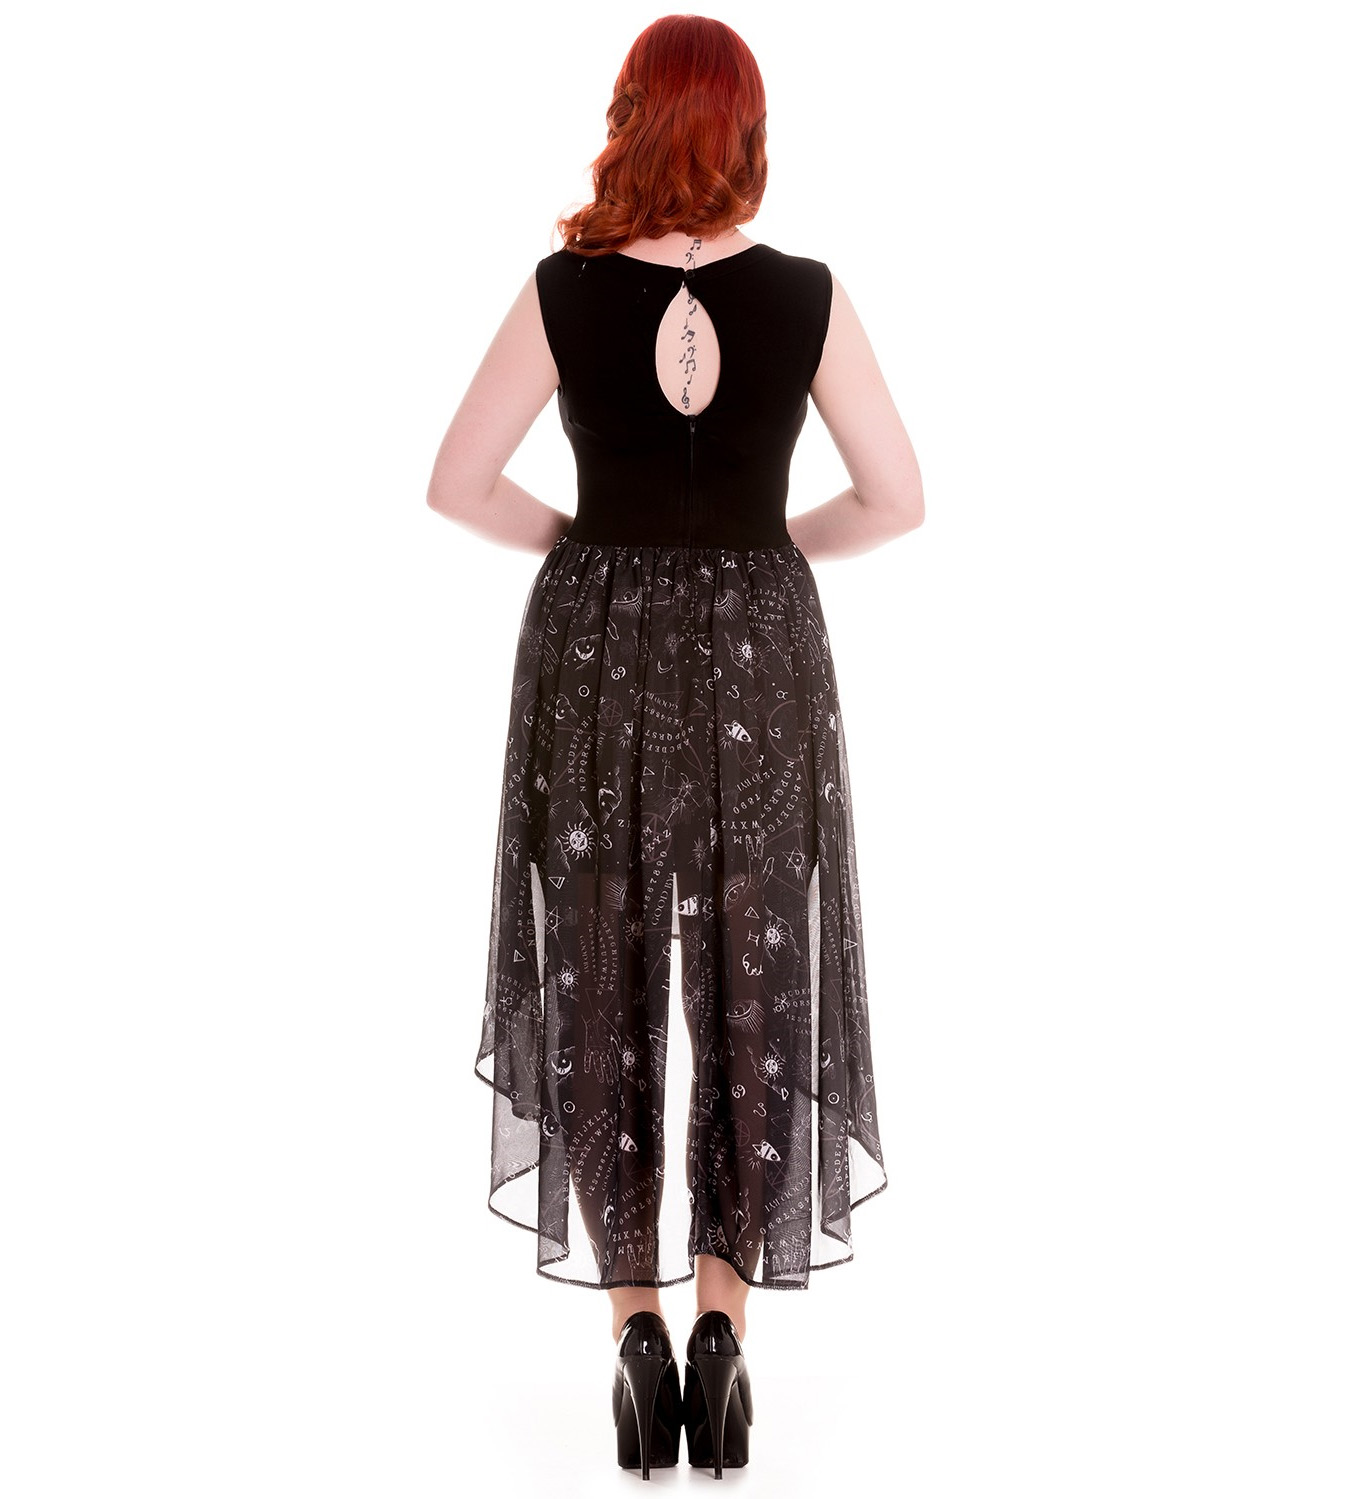 HELL-BUNNY-Spin-Doctor-Goth-Black-Witch-Ouija-SPIRIT-Dress-All-Sizes thumbnail 17